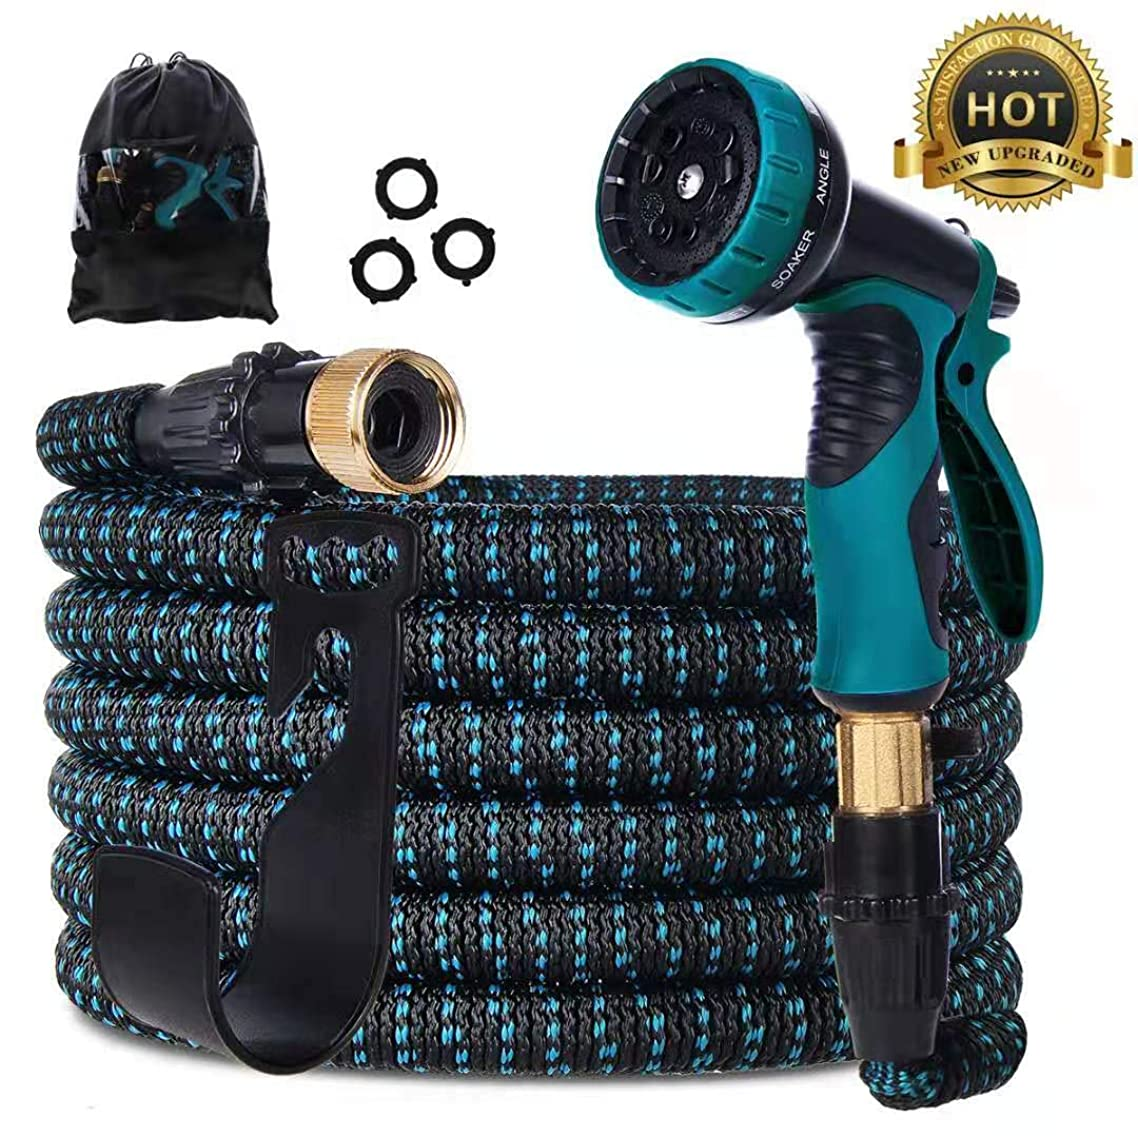 Gardguard 50ft Expandable Garden Hose: Water Hose with 9 Function Spray Nozzle and Durable 3-Layers Latex, Flexible Water Hose with Solid Brass Fittings, Best Choice for Watering and Washing